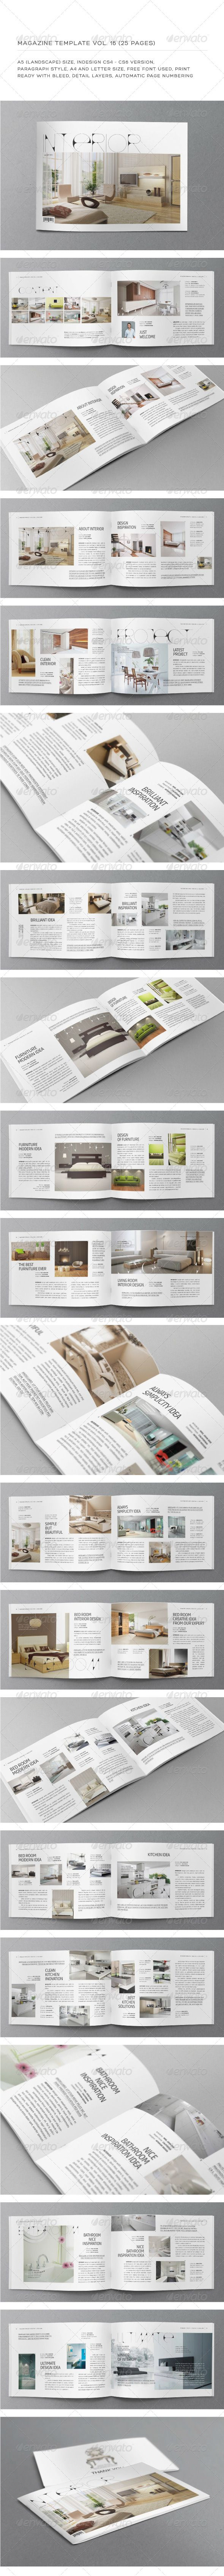 A5 Landscape 25 Pages mgz (Vol. 16)   Indesign templates, Template ...